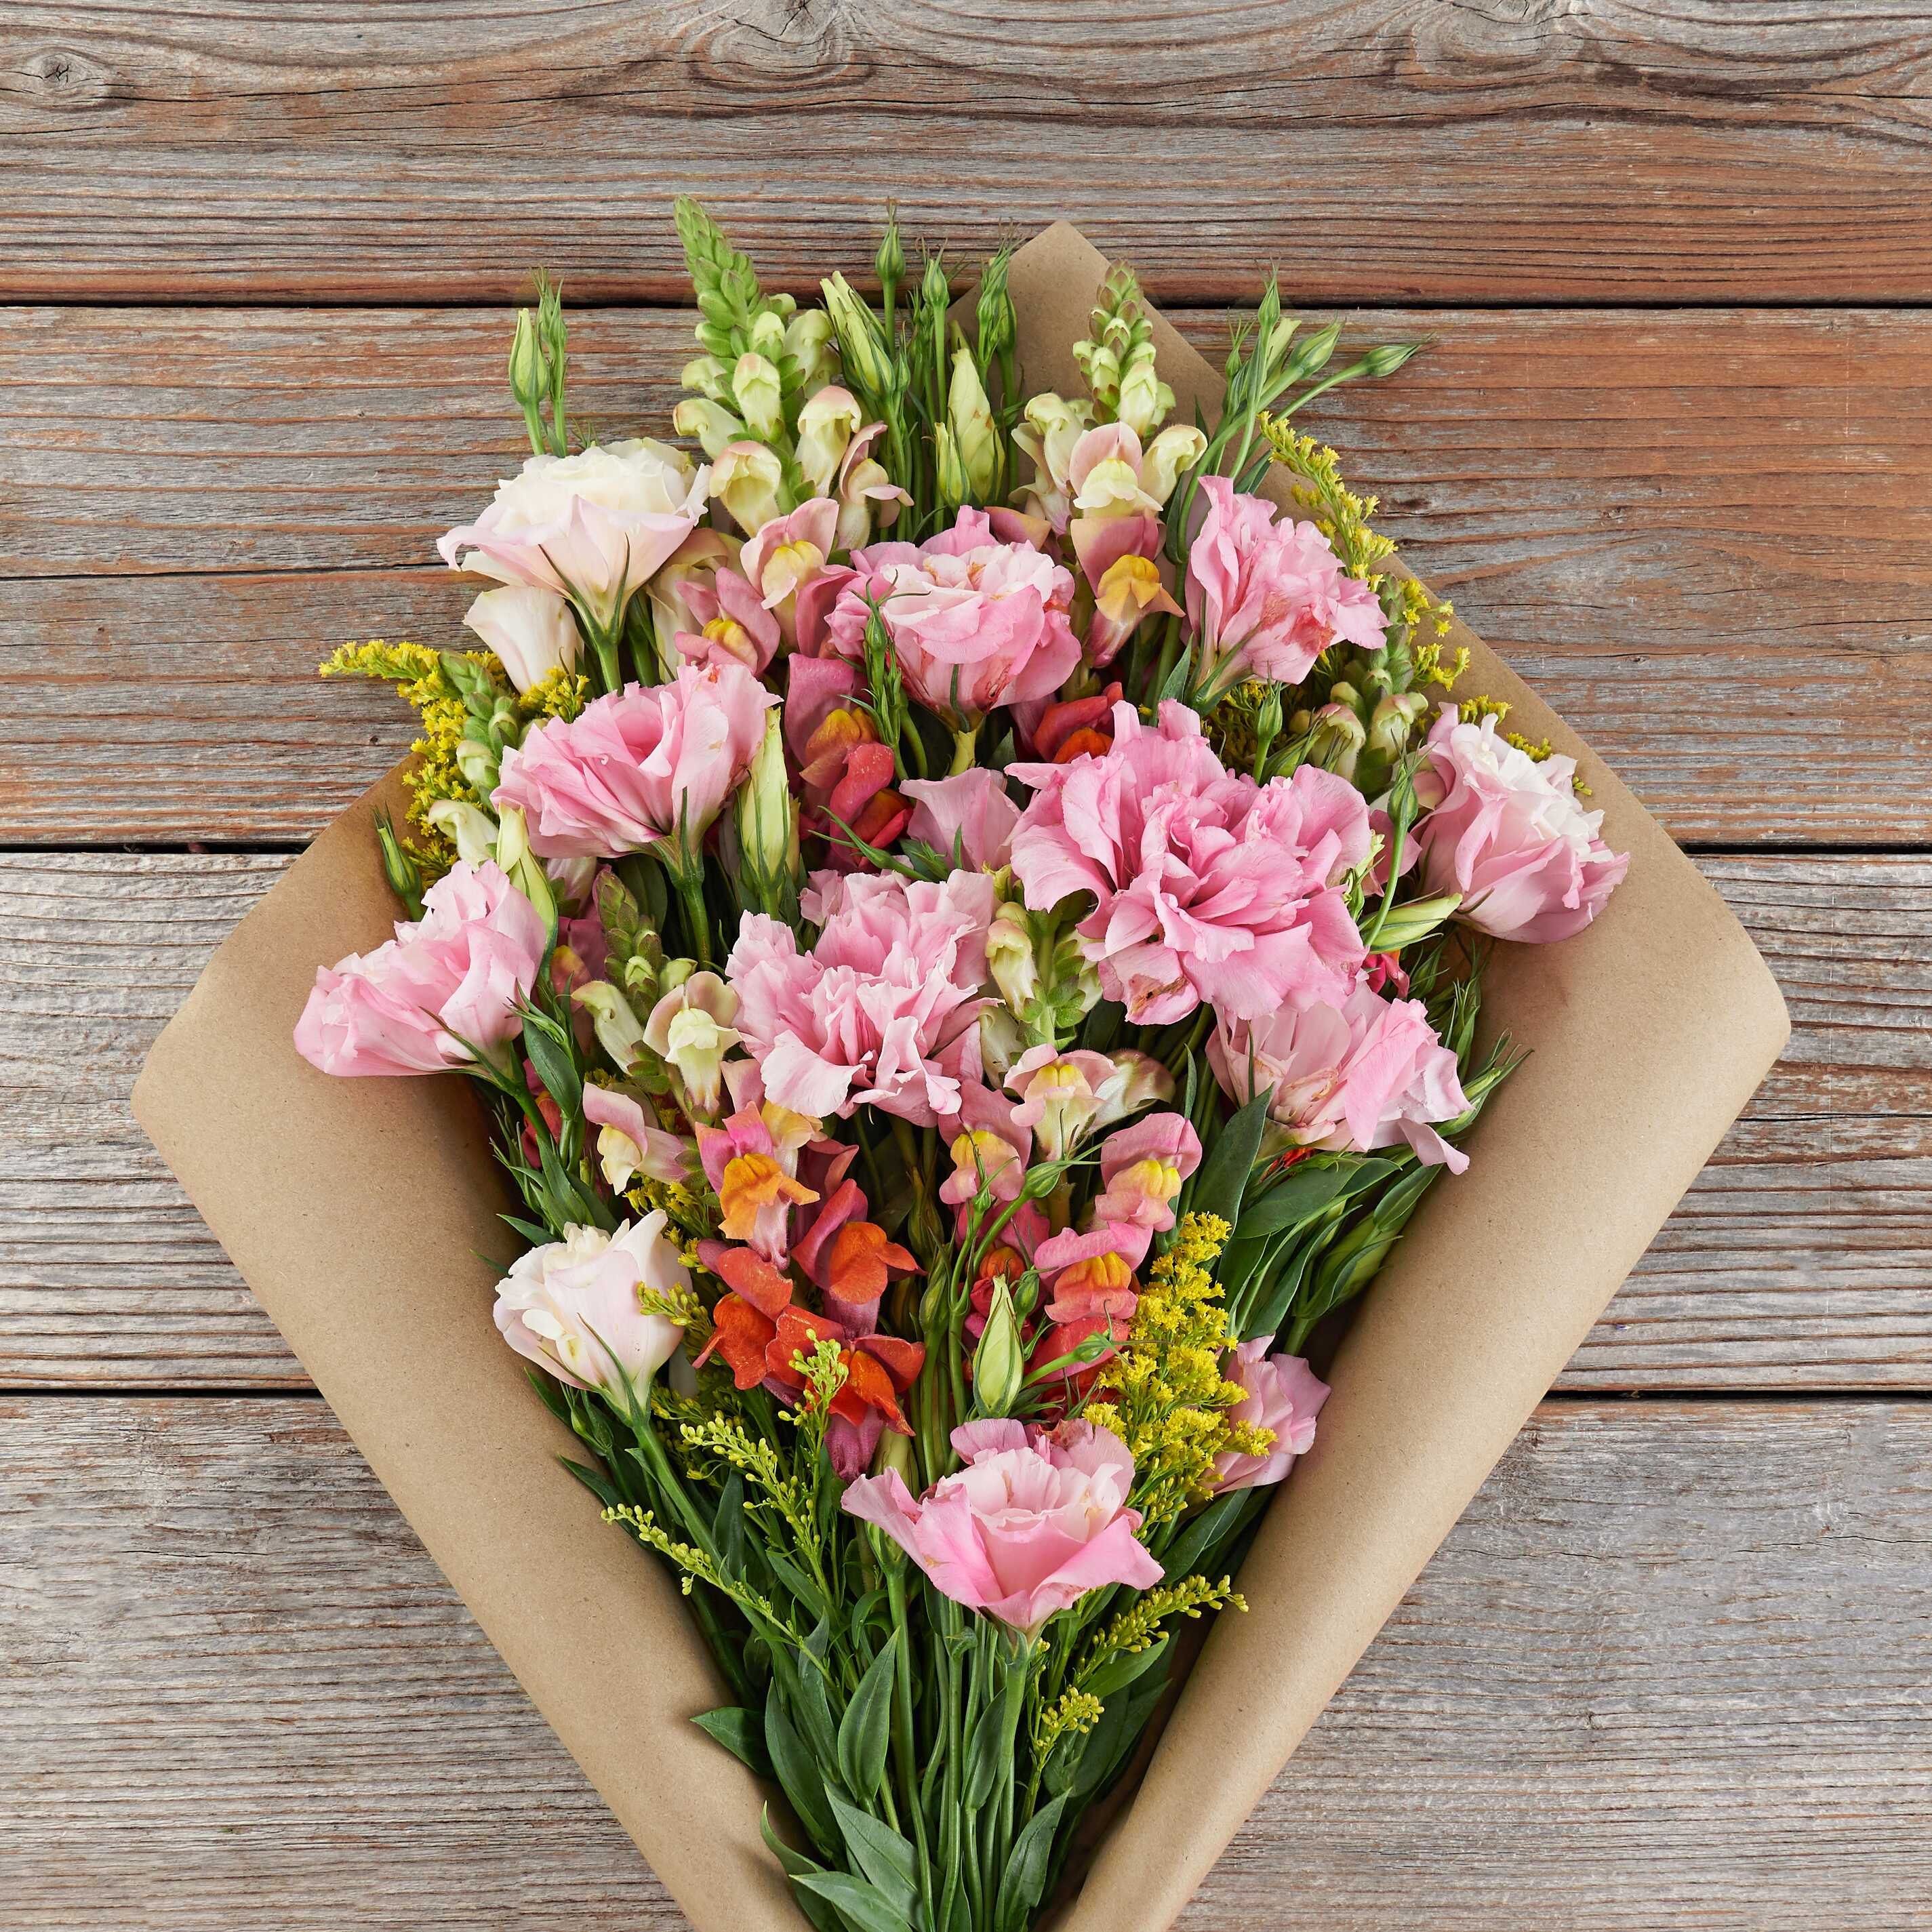 bouquet of pink flowers for a mother's day gift idea